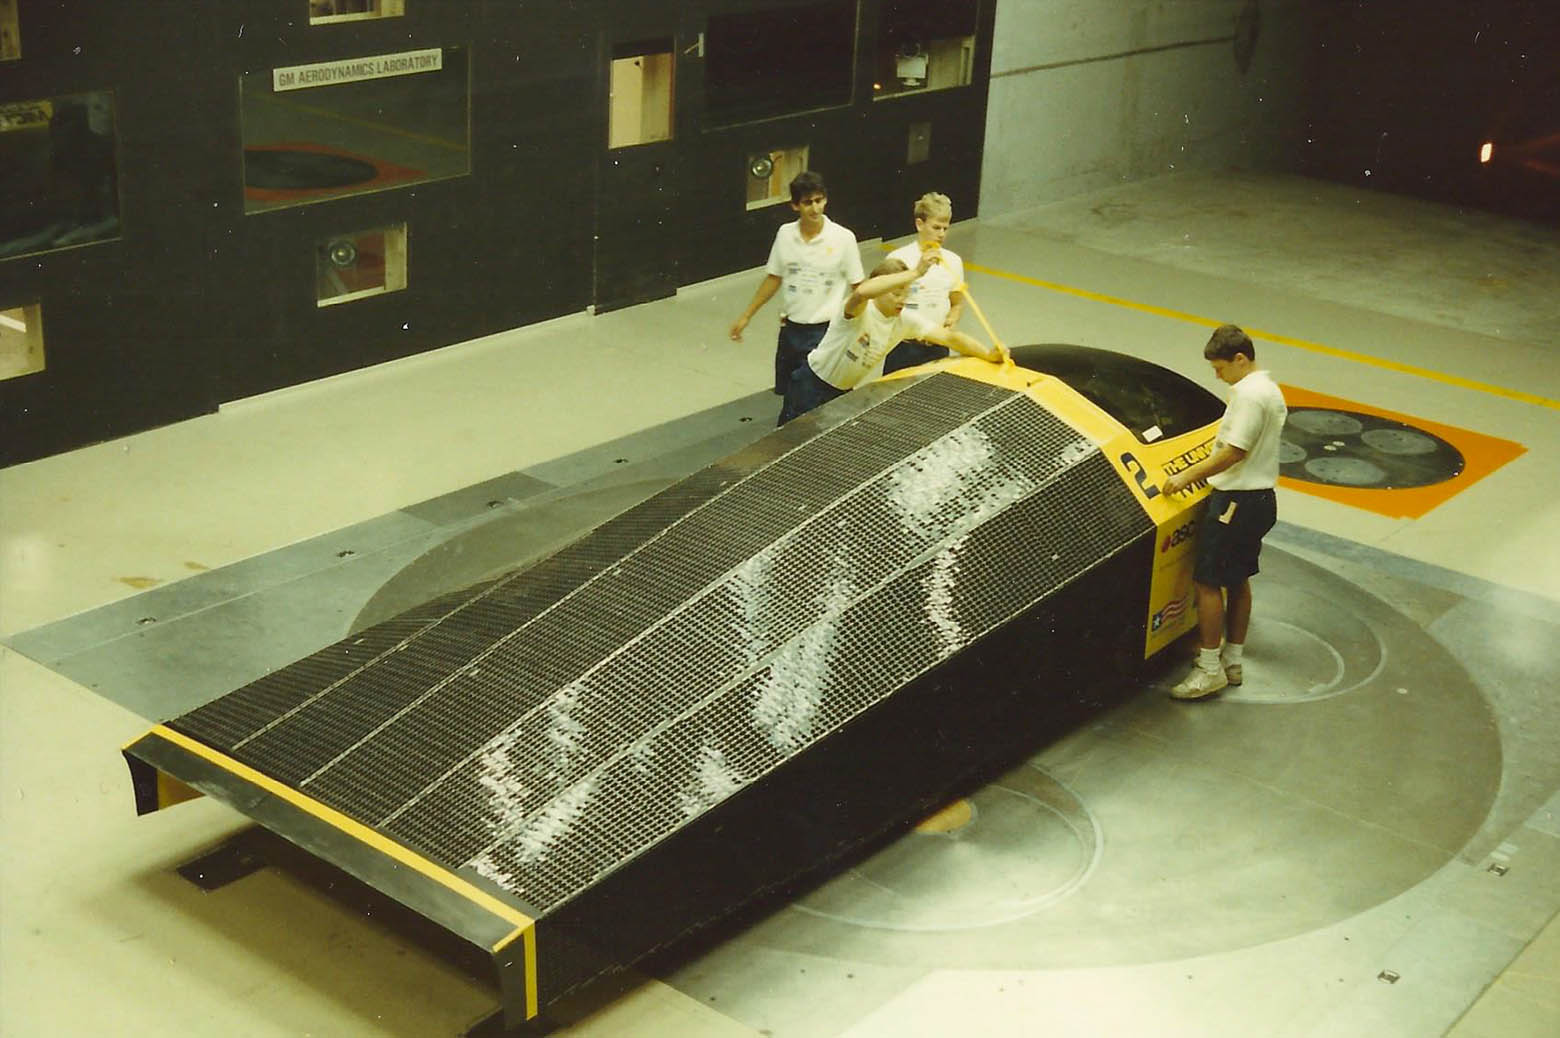 Building and testing the first solar car, Sunrunner.